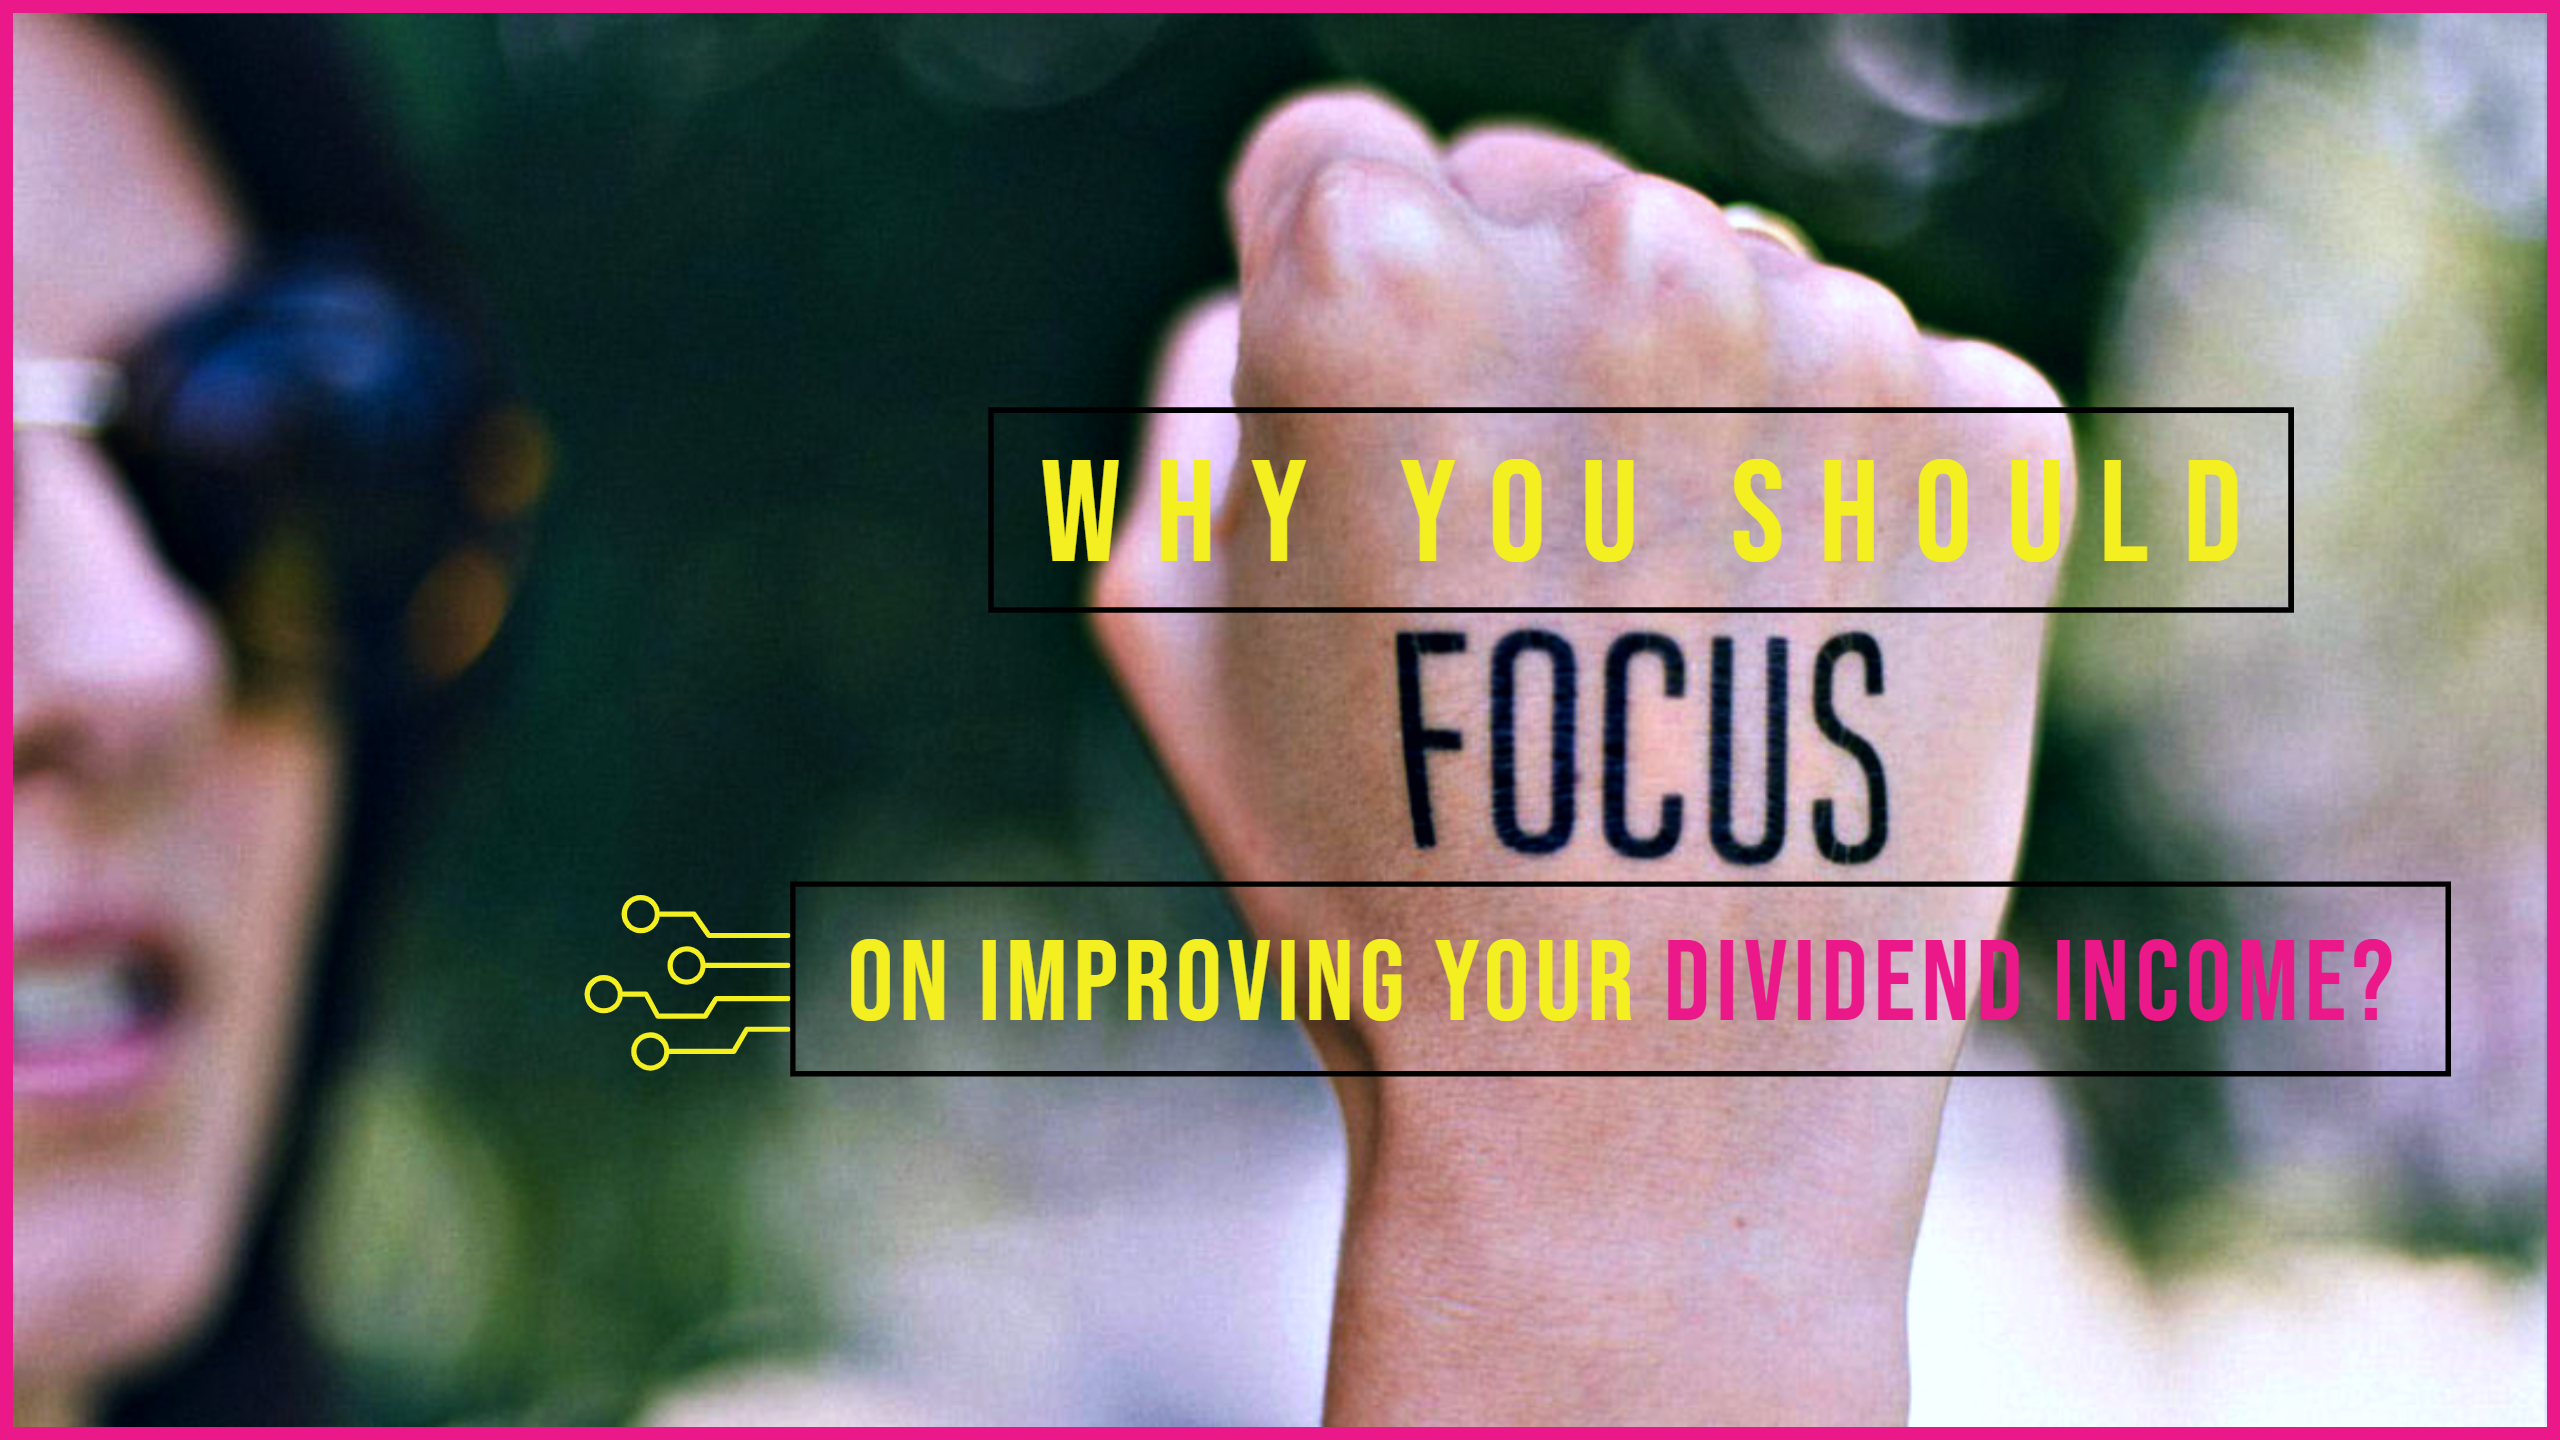 Why You Should Focus On Improving Your Dividend Income